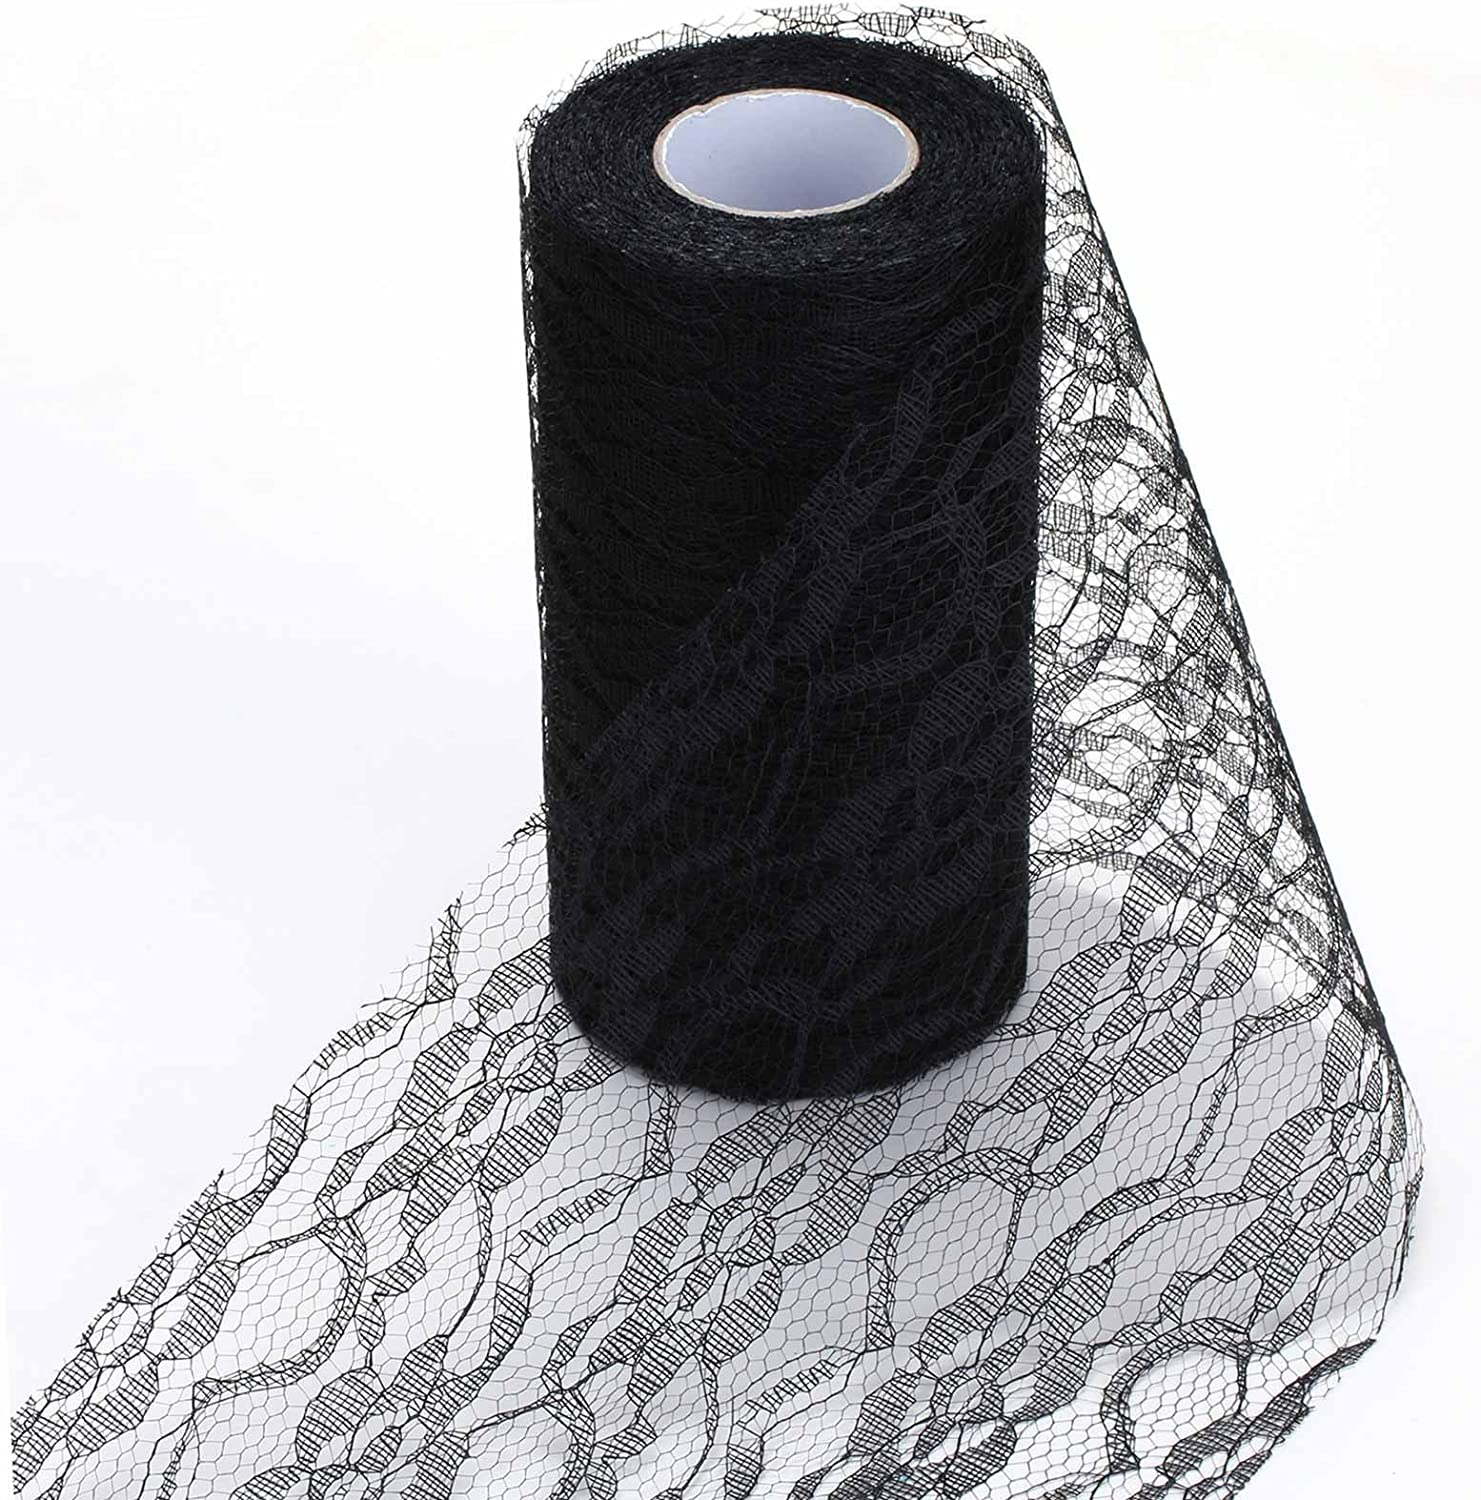 Vlovelife Black 6 x 25Yards Vintage Lace Roll Fabric Polyester Tulle Roll For Tutu Skirt Table Runner Chair Sash Bow DIY Wedding Party Art Craft Decor